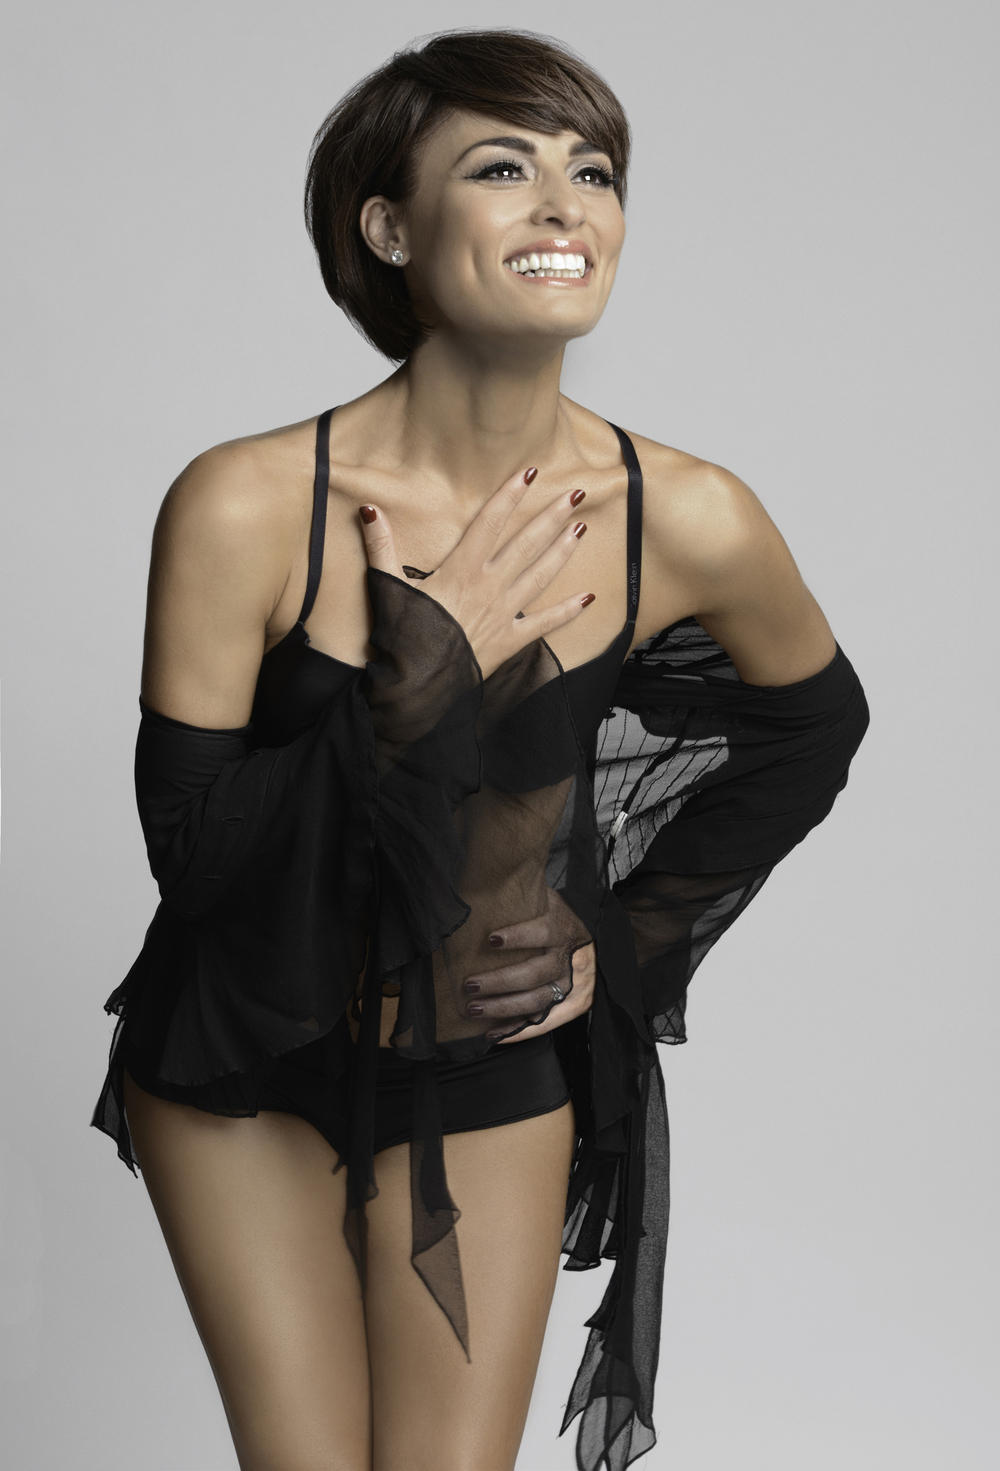 FLAVIA CACACE | STRICTLY COME DANCING